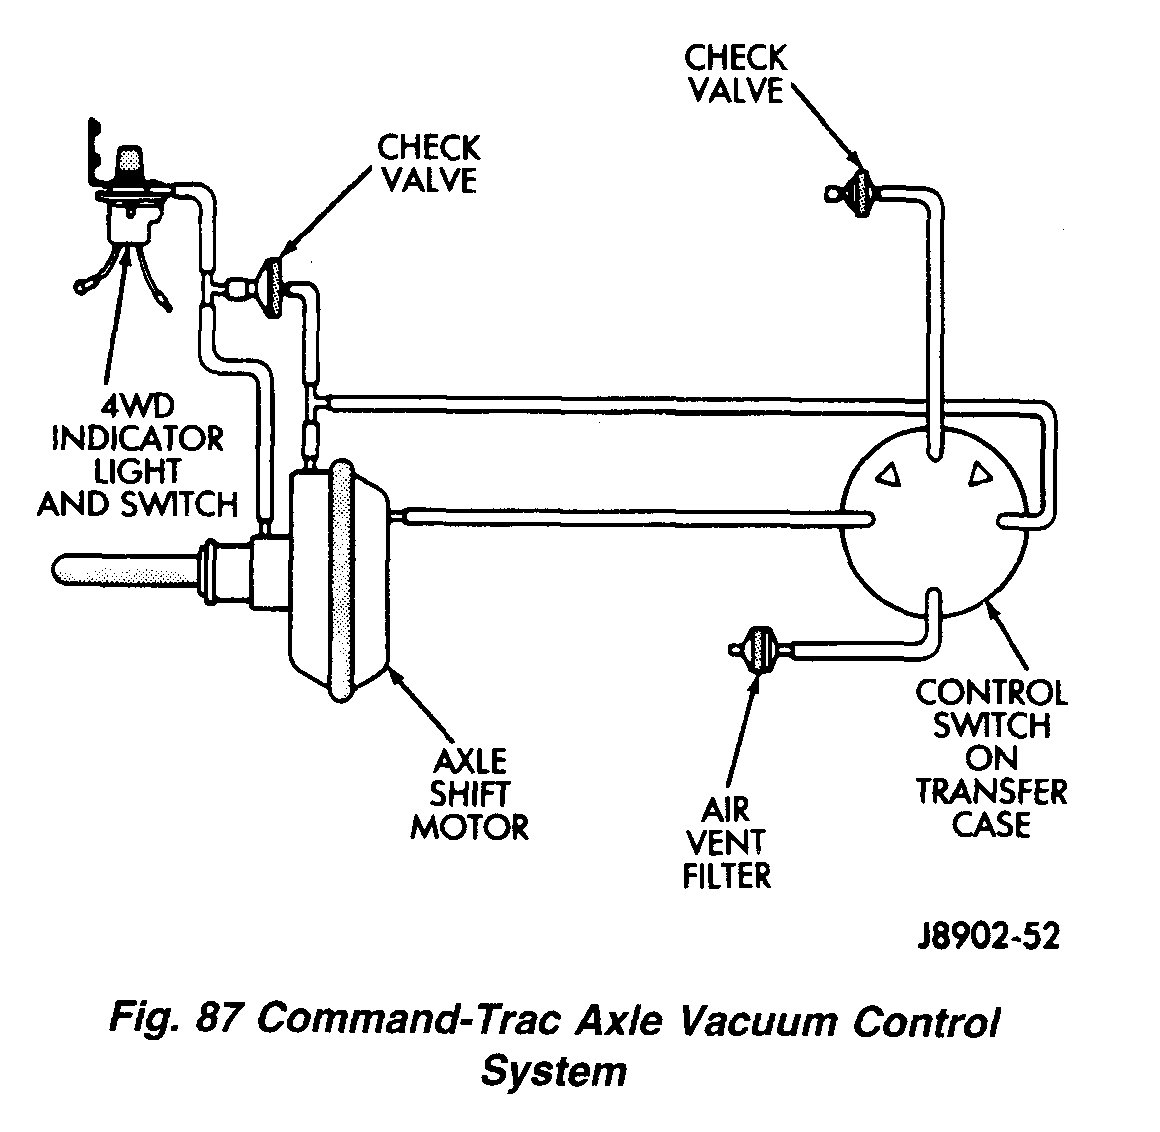 hight resolution of 1988 yj 4 2l i6 4wd vacuum lines diagram needed jeep wrangler forum 1989 jeep wrangler 4 wheel drive vacuum diagram jeep yj 4wd vacuum schematic